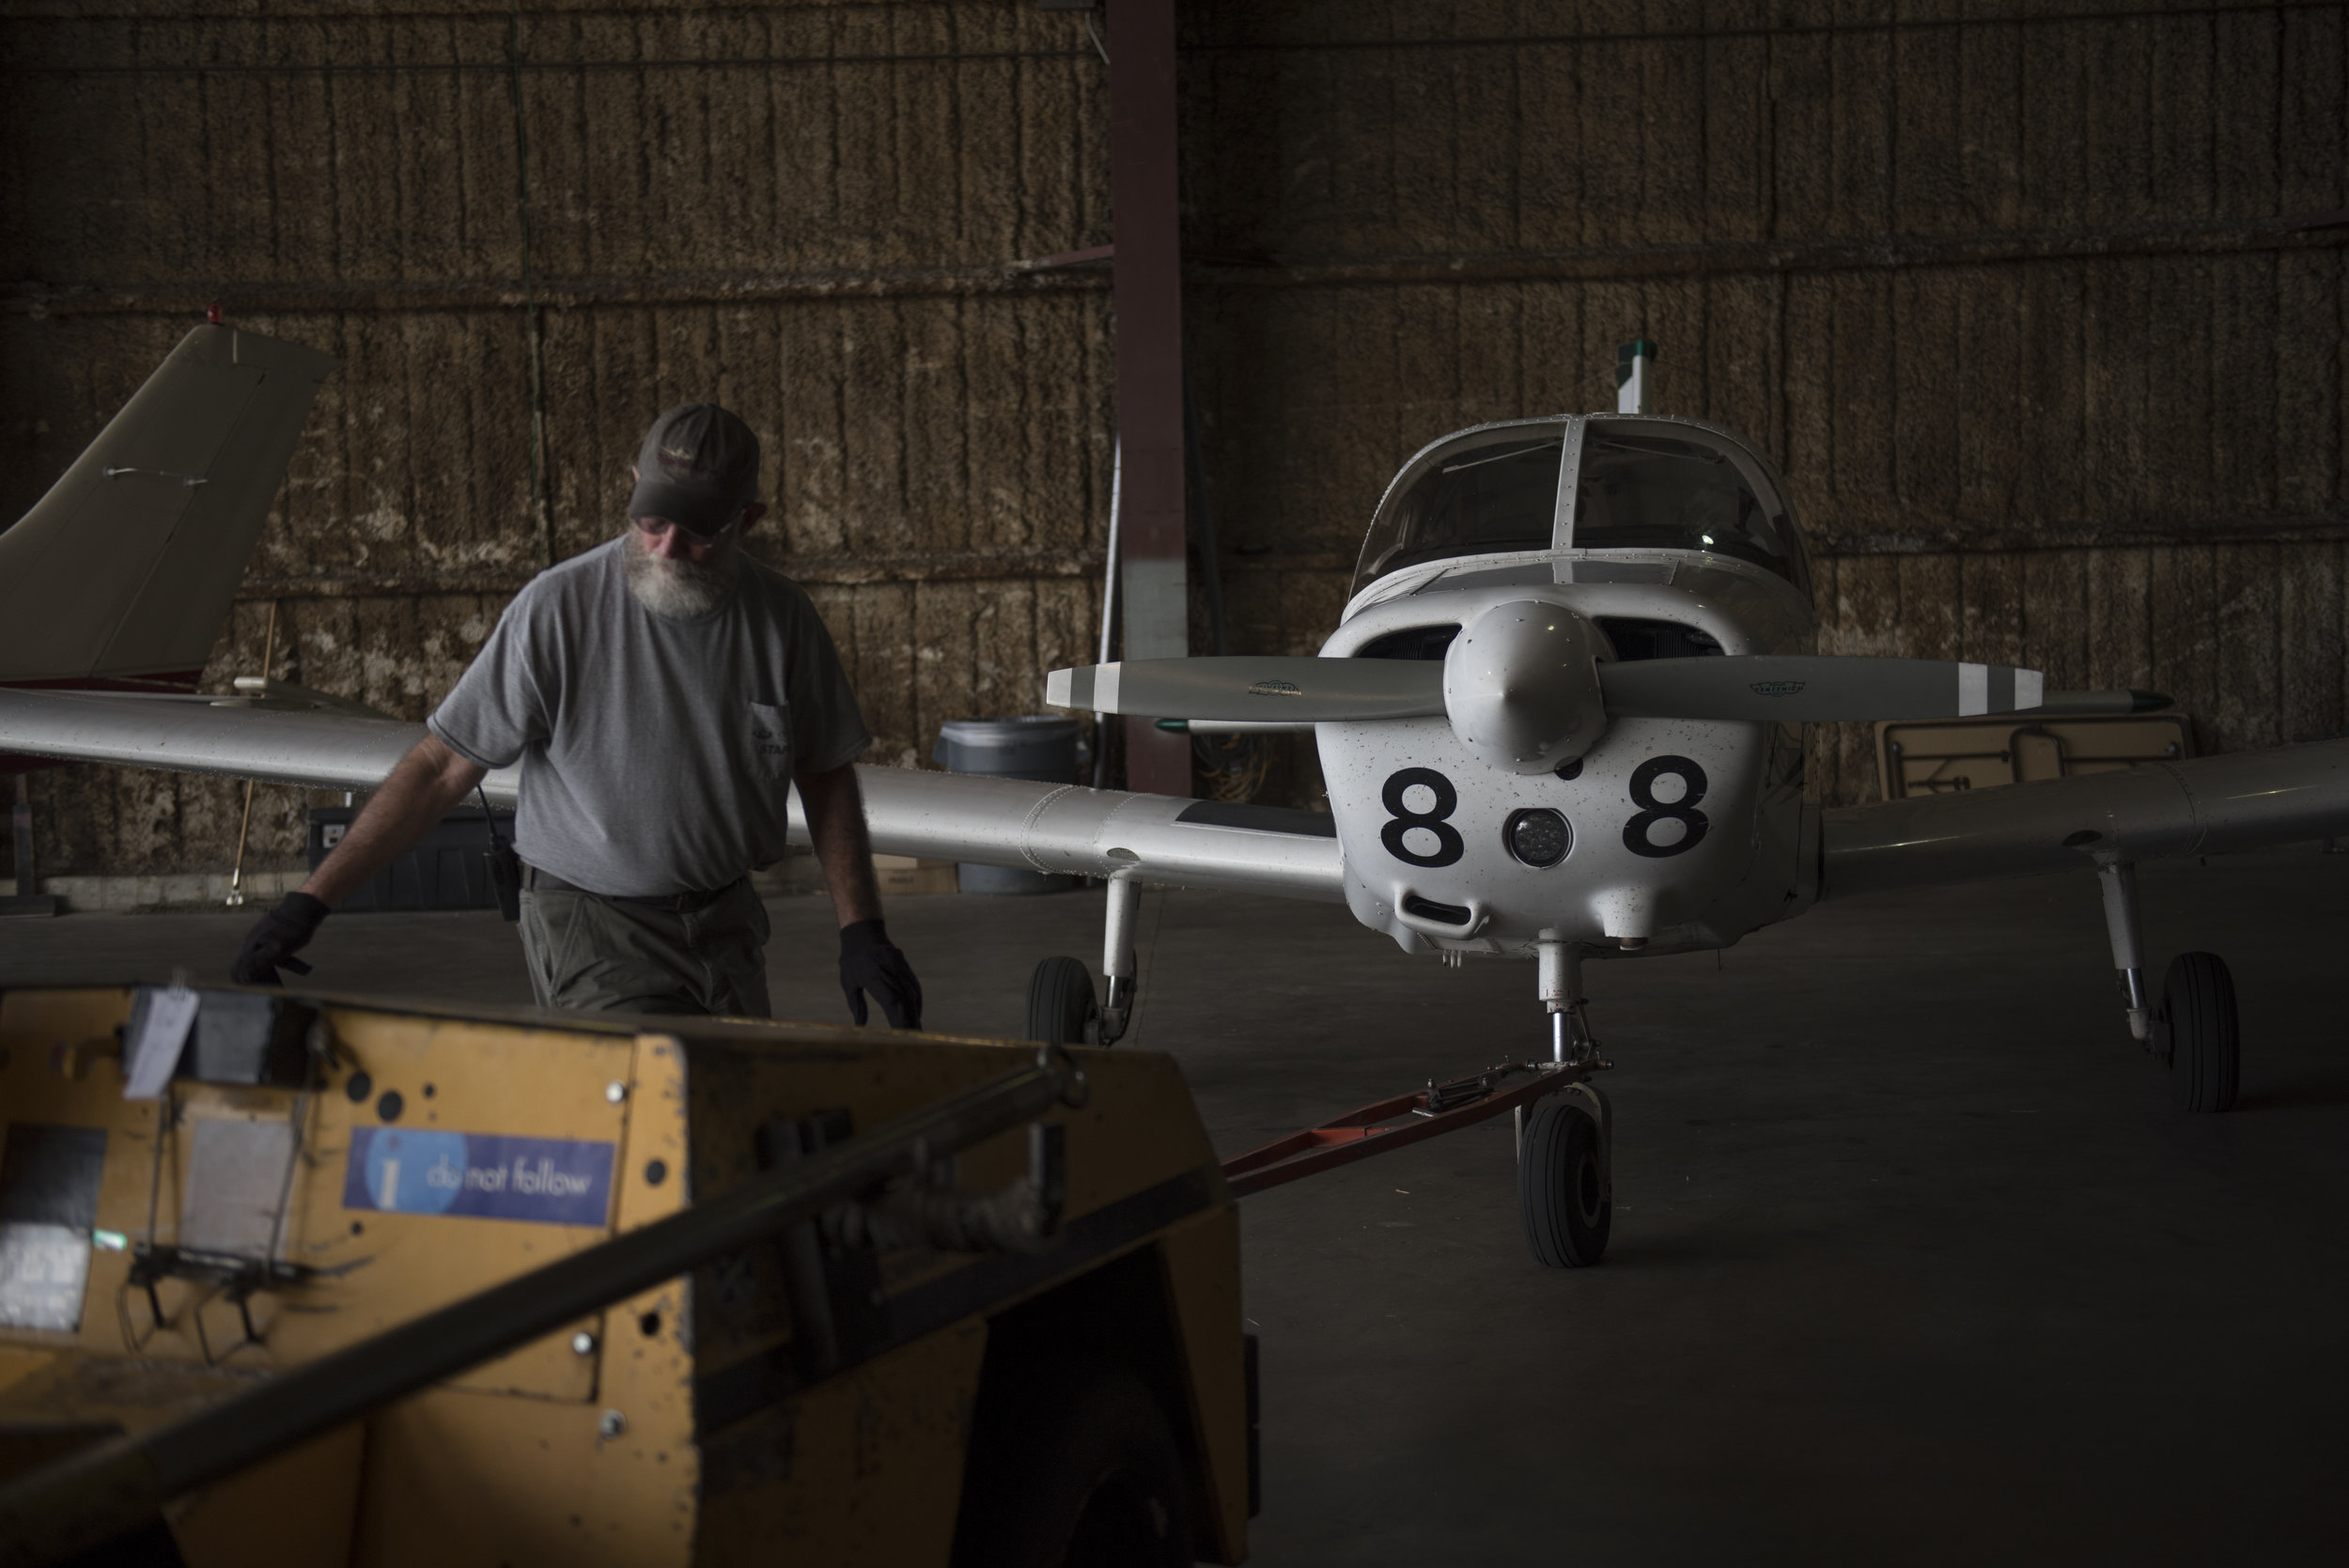 Lineman Bob Black moves one of the Ohio University airplanes out of the hangar in preparation for student use on Sept. 20, 2017.